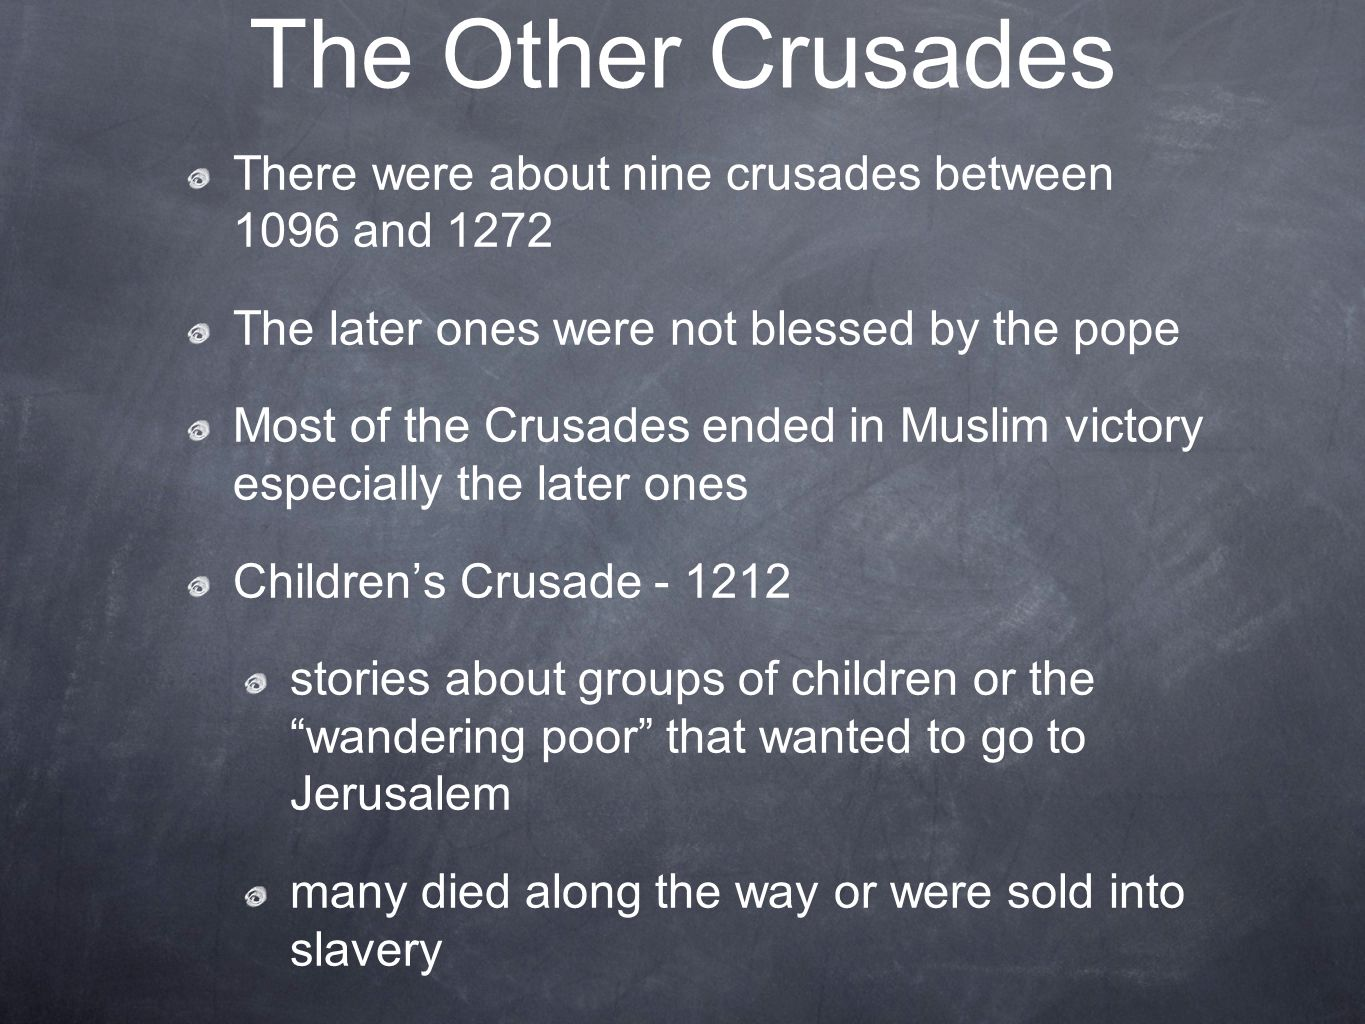 The Other Crusades There were about nine crusades between 1096 and The later ones were not blessed by the pope.